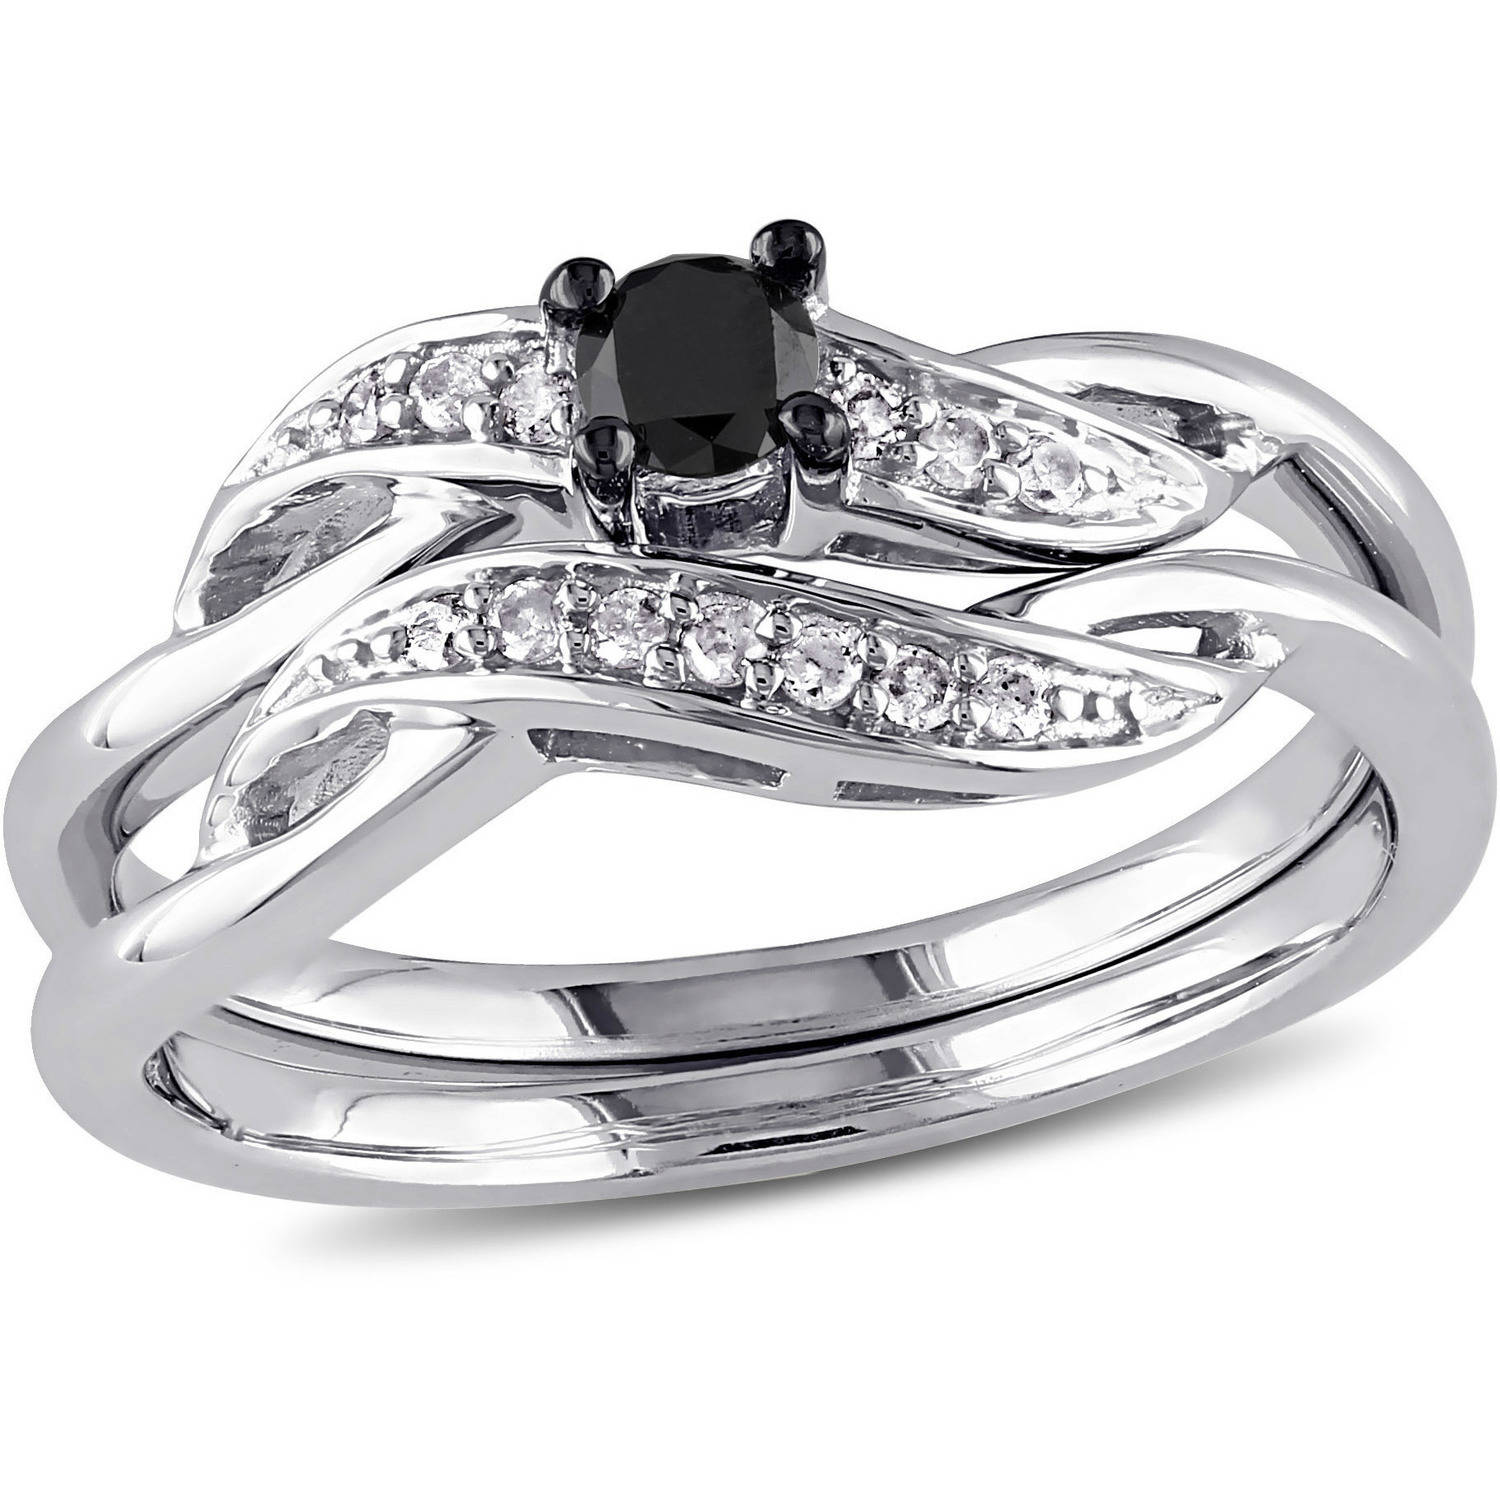 1/4 Carat T.W. Black and White Diamond Sterling Silver Bridal Ring Set